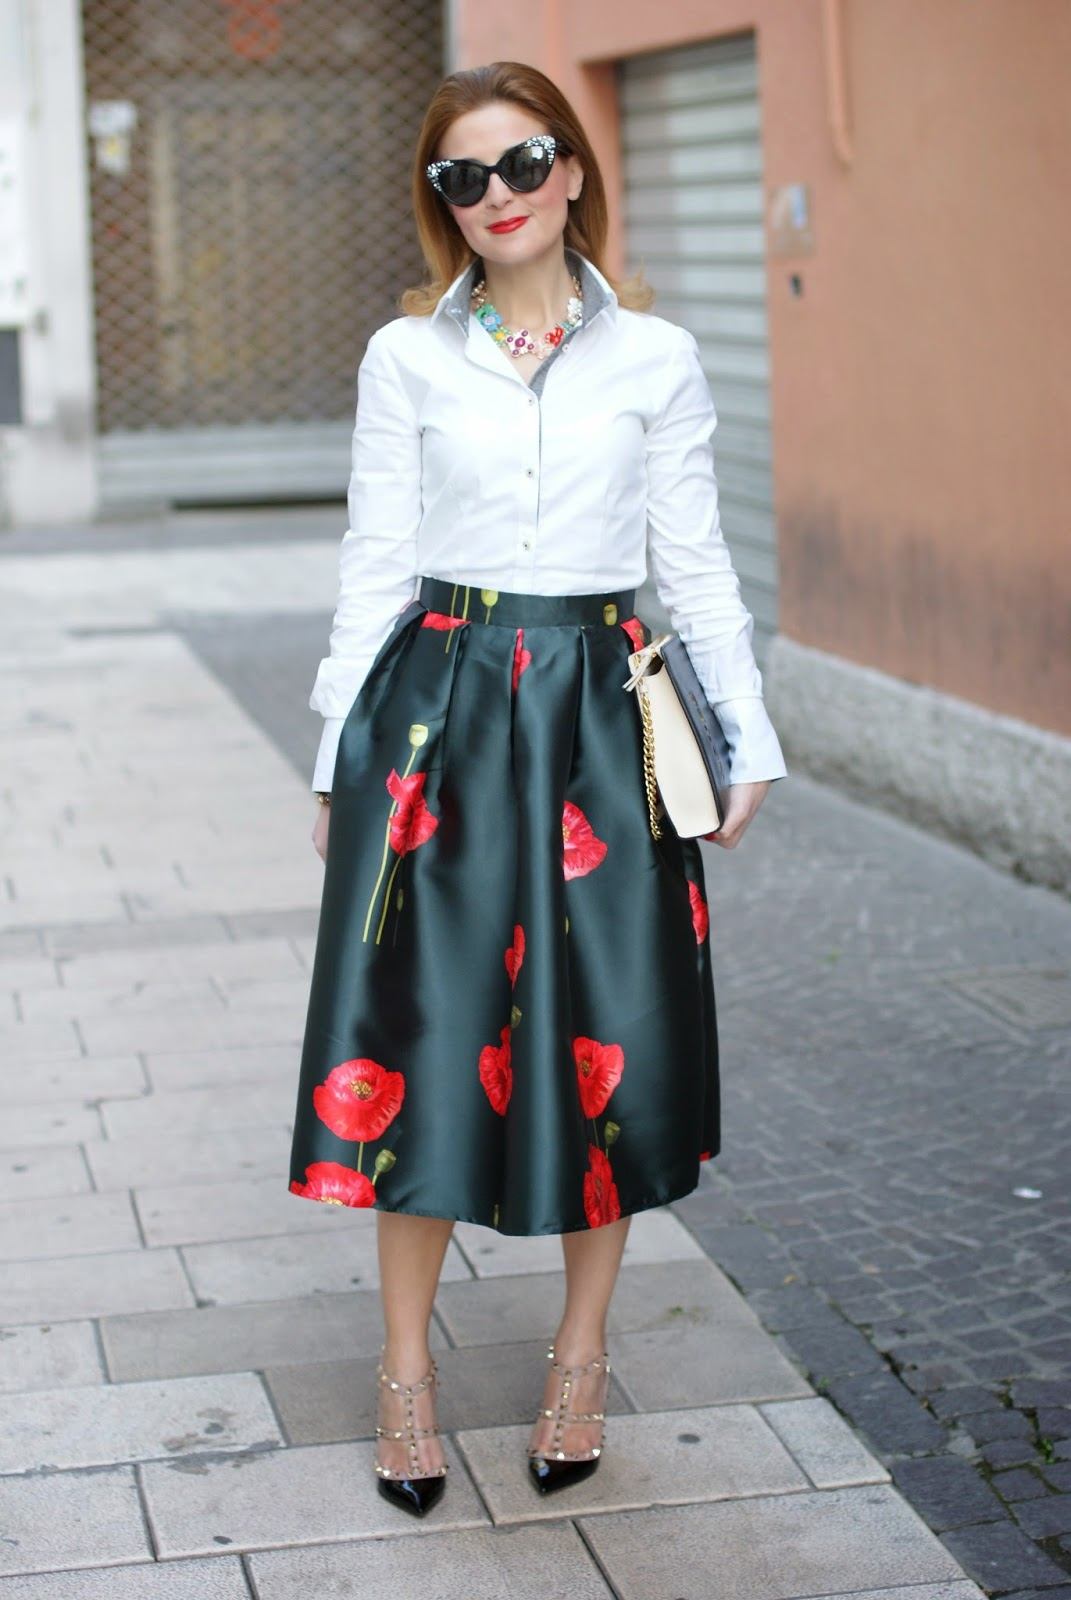 Valentino Rockstud pumps, black patent Valentino heels, Romwe midi skirt, poppy print skirt, Fashion and Cookies, fashion blogger